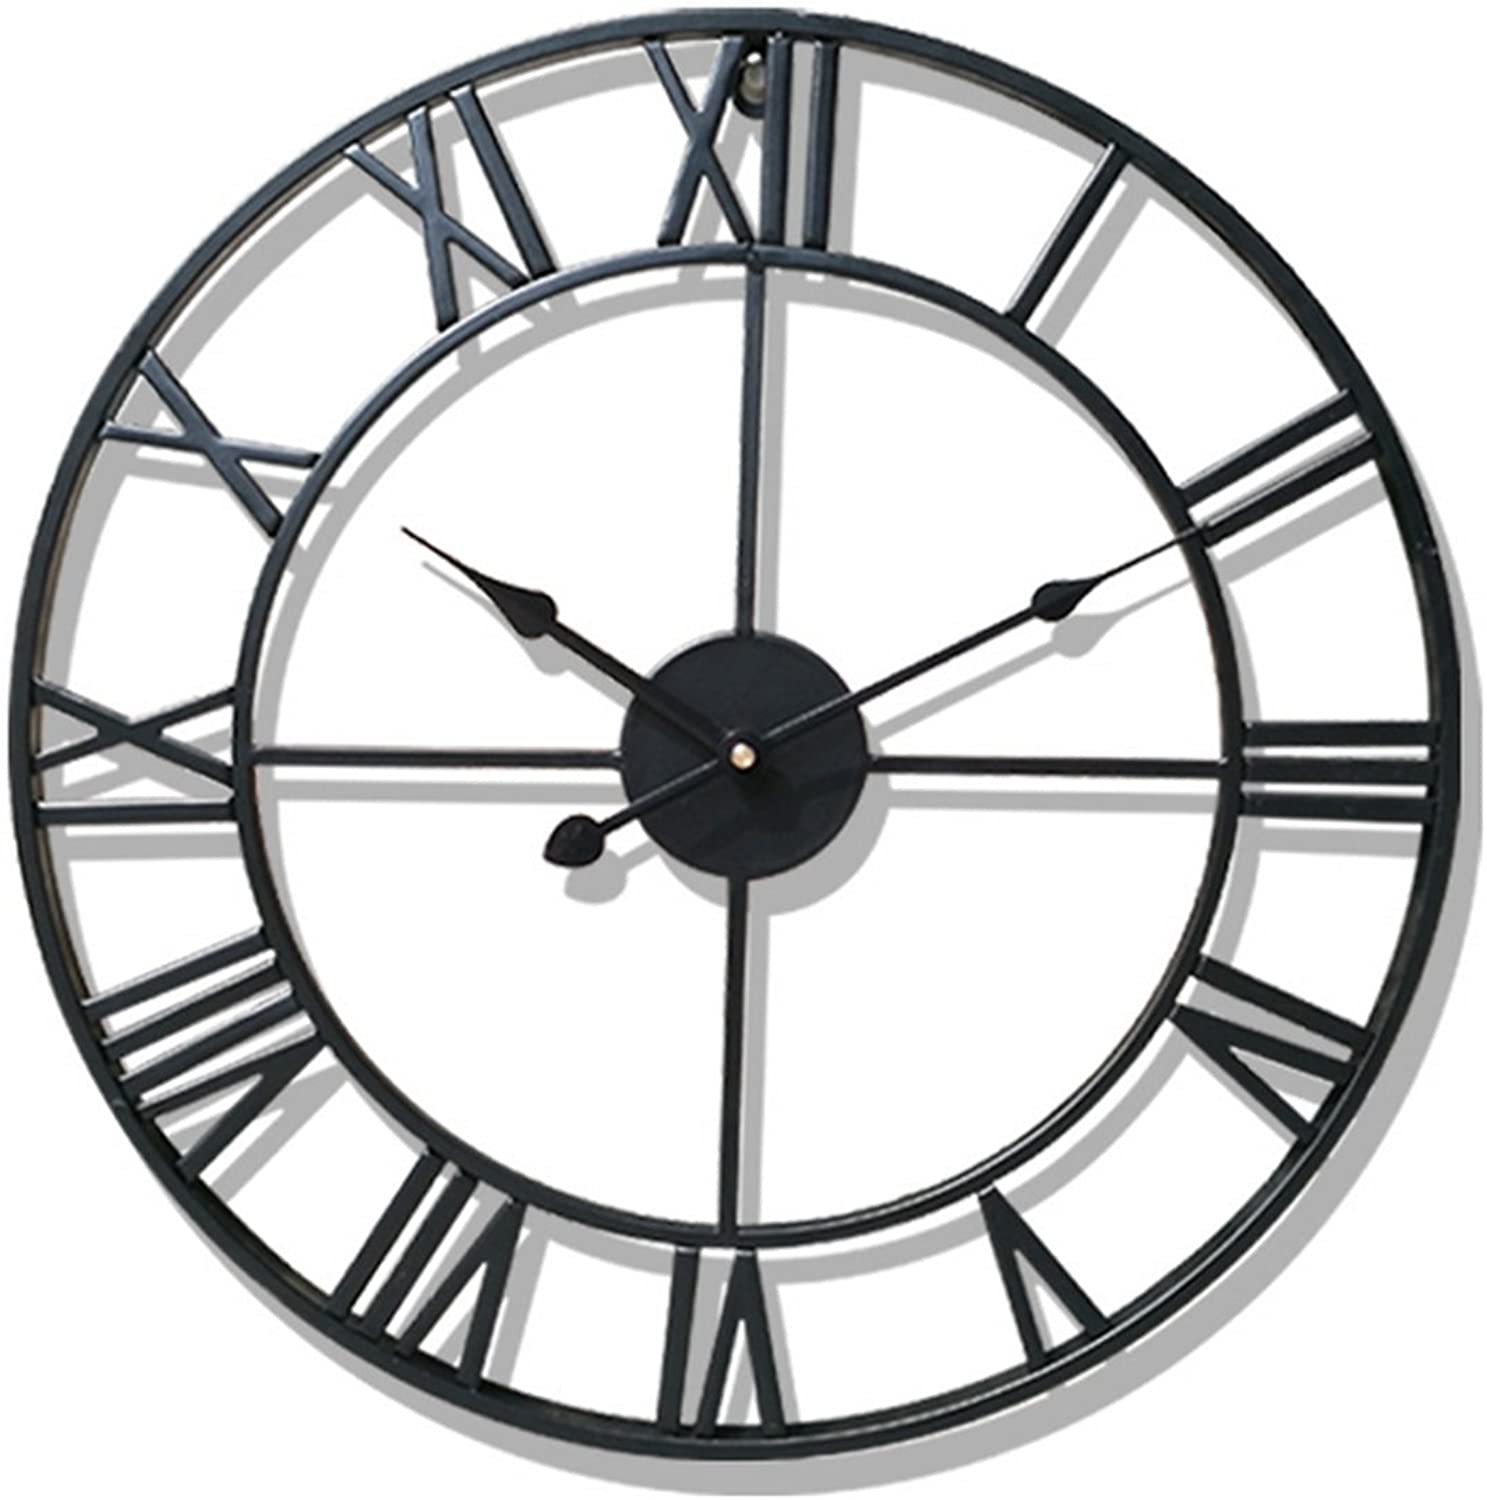 PeleusTech? Wall Clock, 20-inch Dia Large Iron Metal Vintage Retro Indoor Wall Clock with Roman Numerals - (Black)